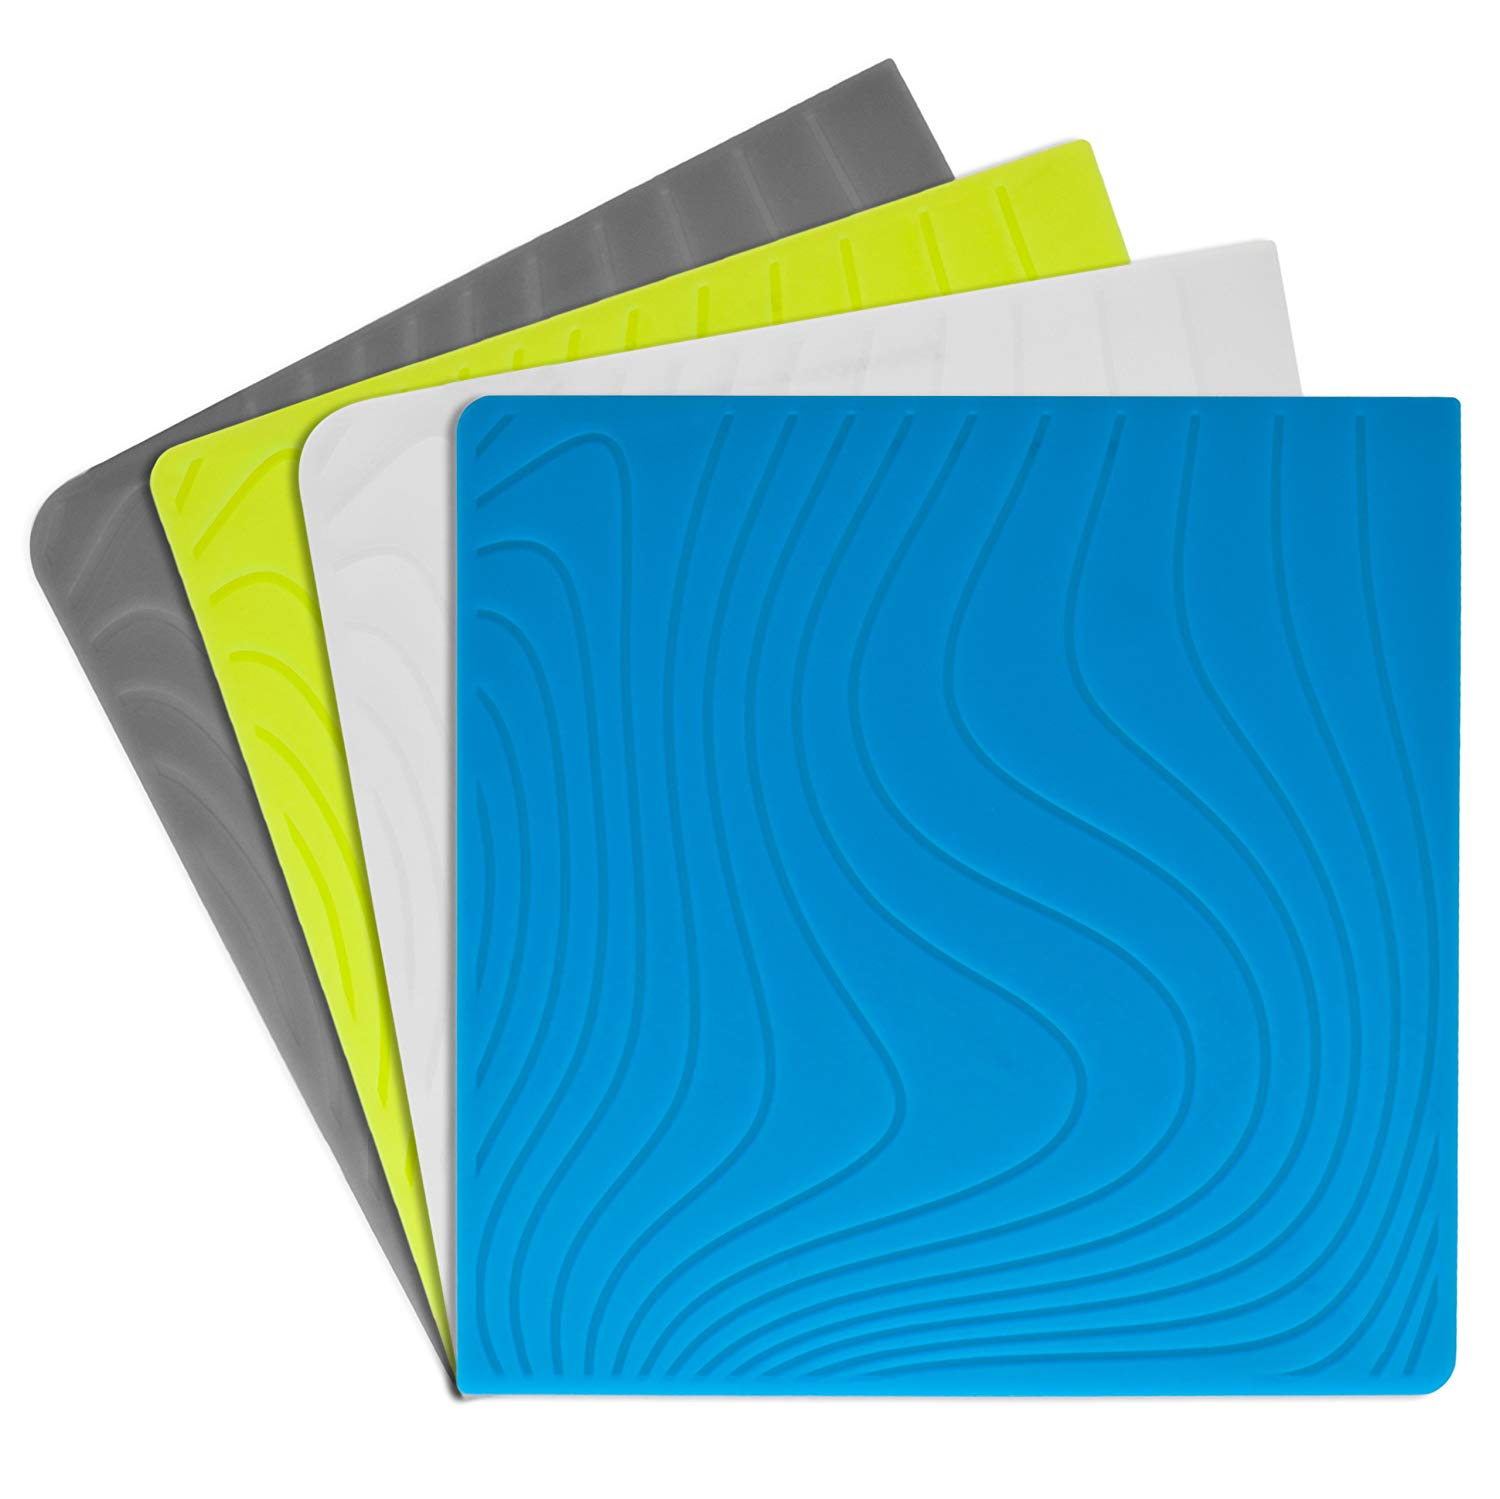 Modern-twist Coaster Notz Silicone Coasters, Studio, Tide, Set of 4